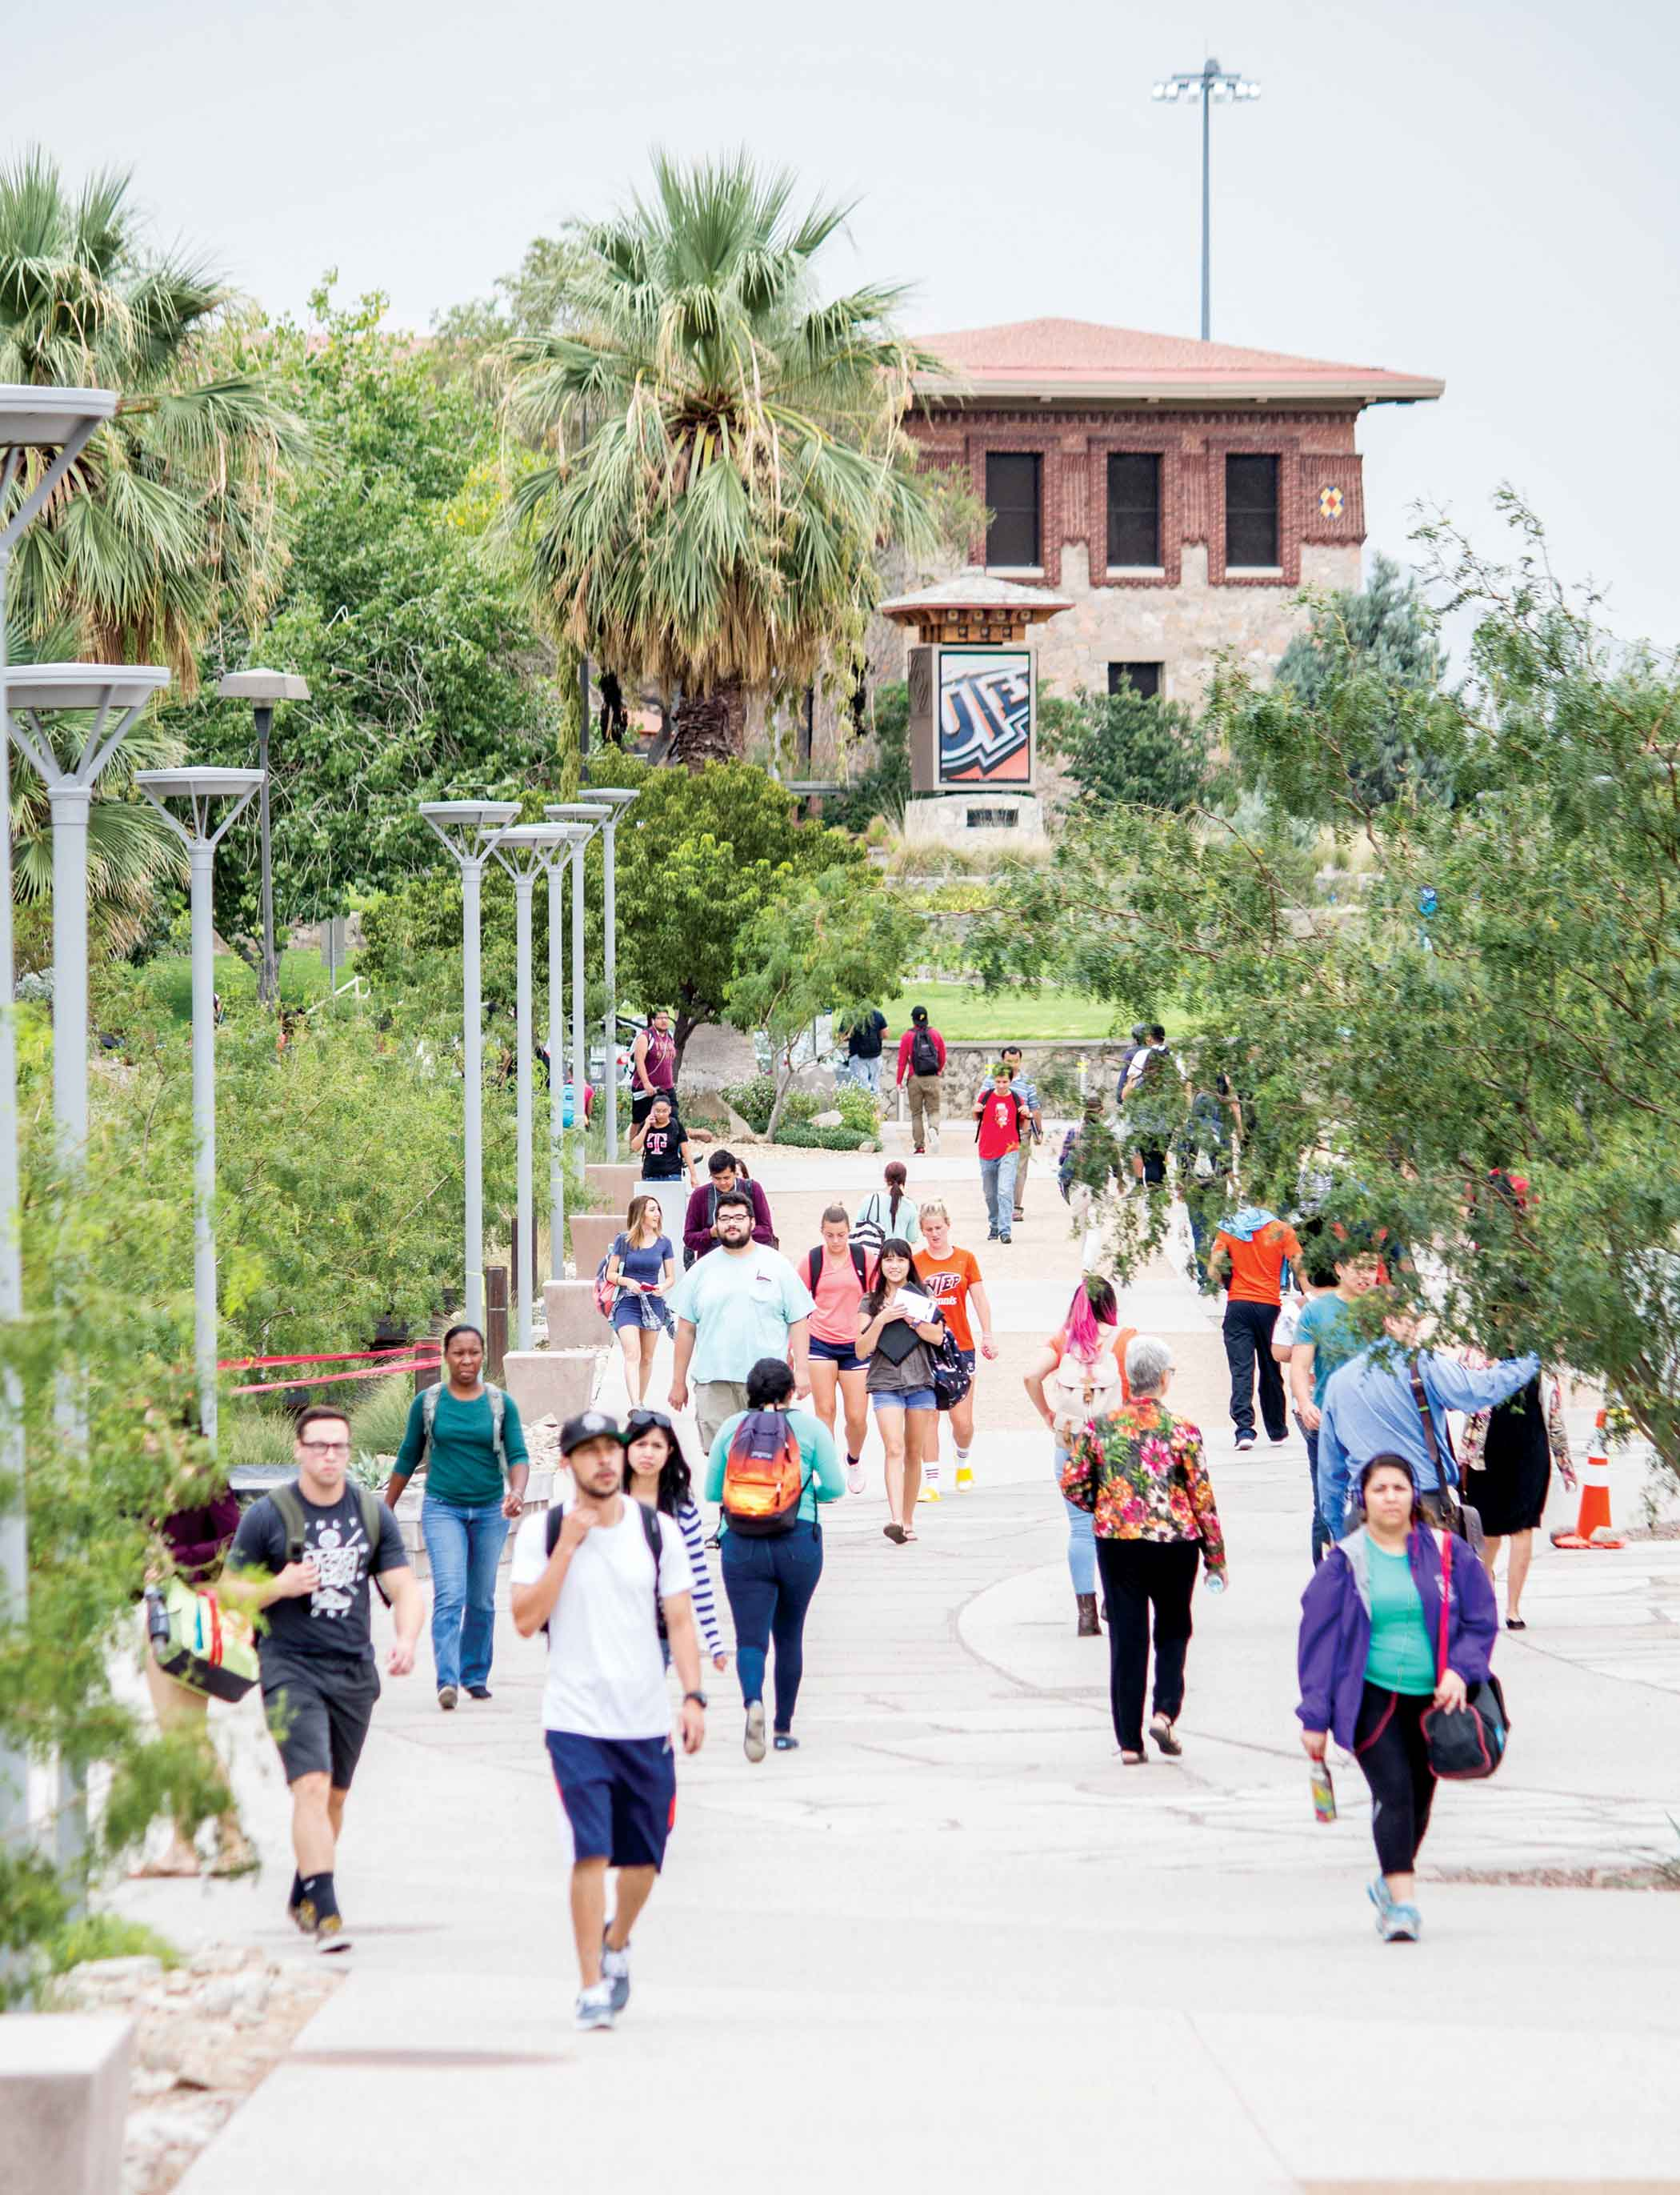 UTEP received outstanding feedback from The Southern Association of Colleges in their report released every 10 years.